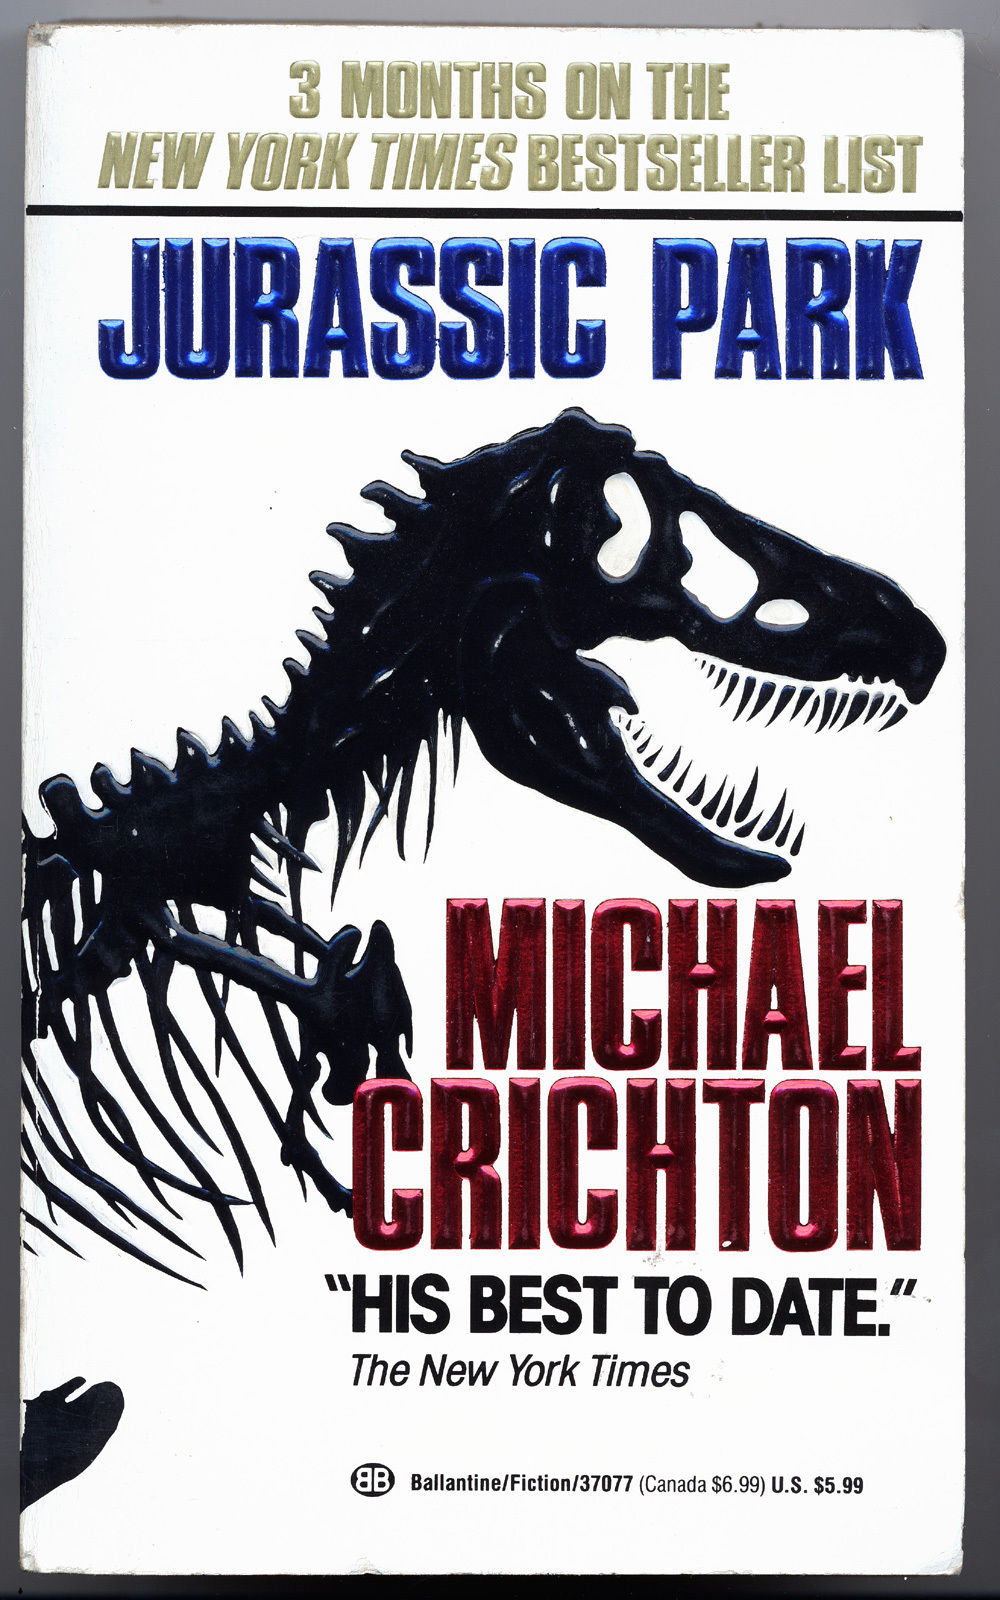 Michael Crichton JURASSIC PARK first paperback edition. Unread, like new.